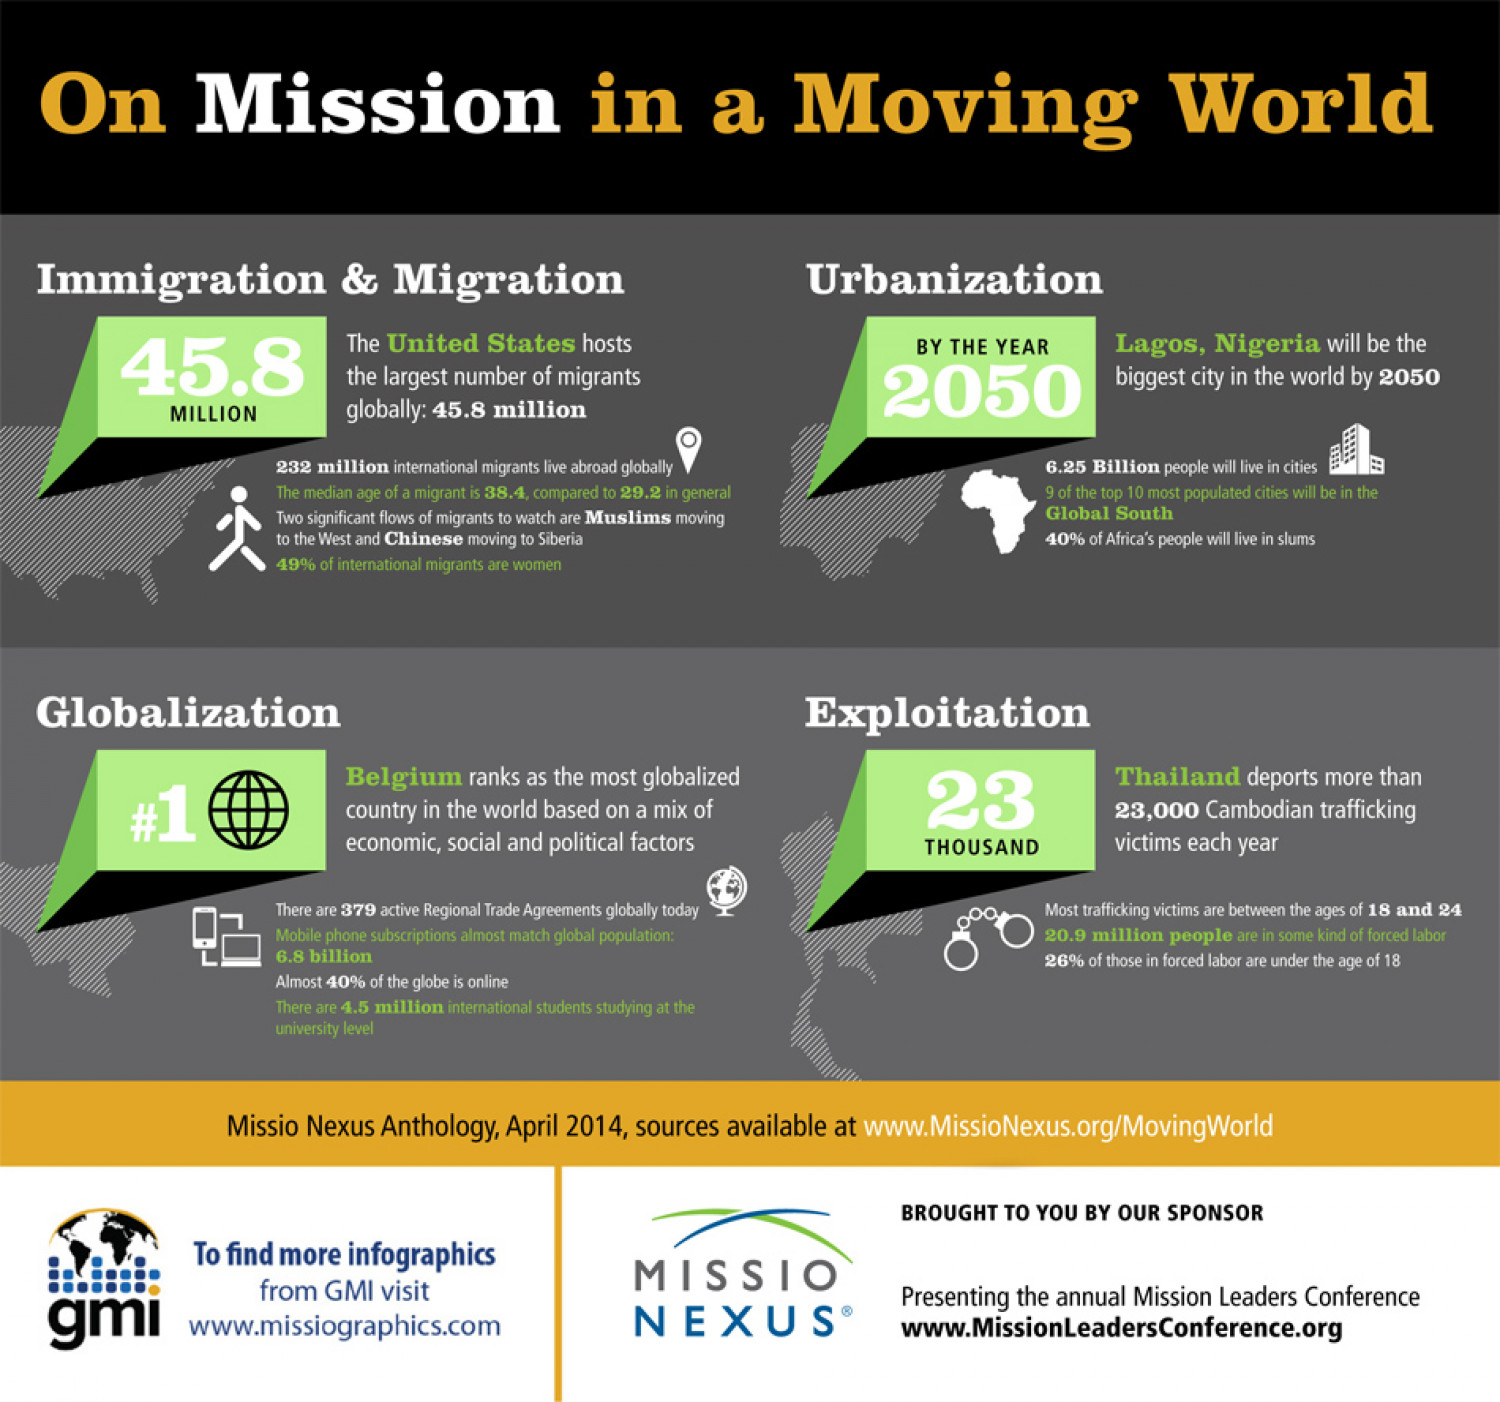 On Mission in a Moving World Infographic